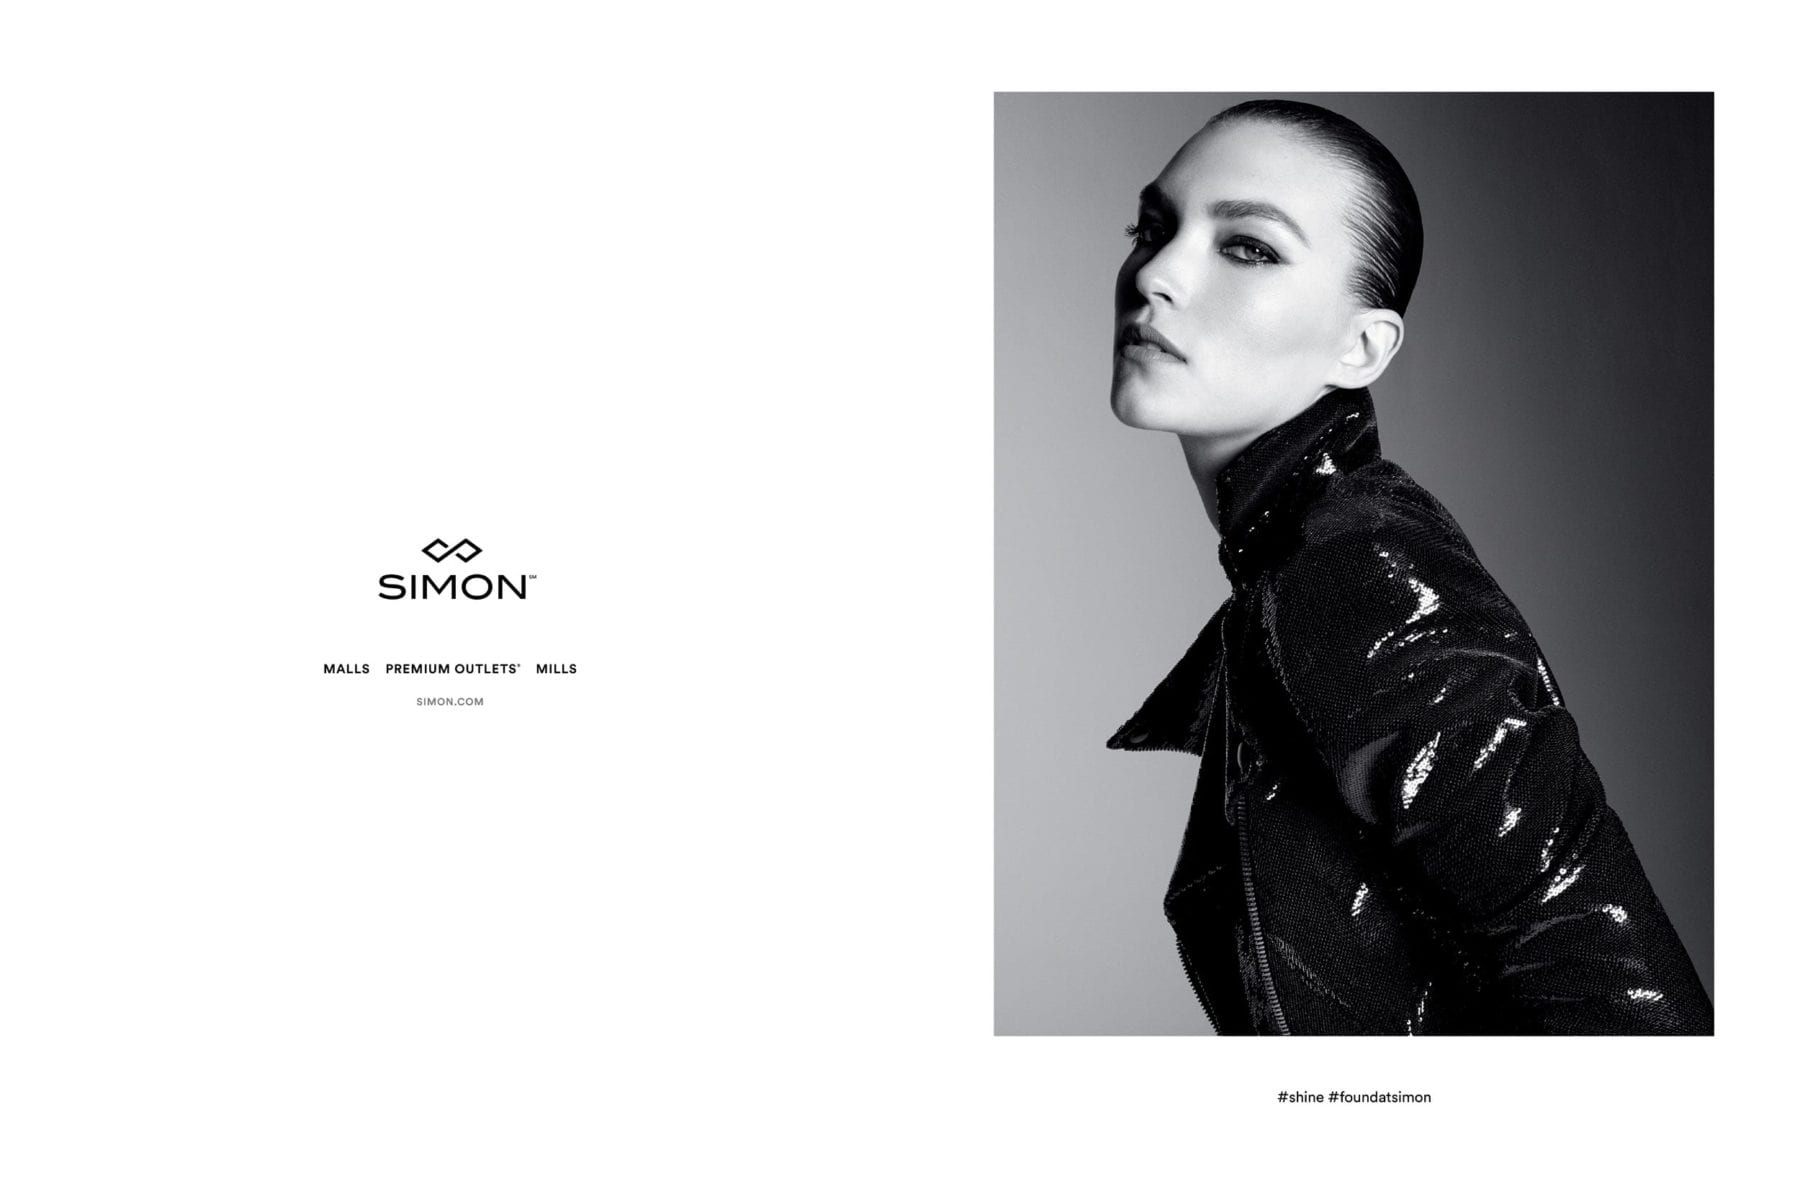 SIMON_LUX_FALL16_LUX_DOCUMENT